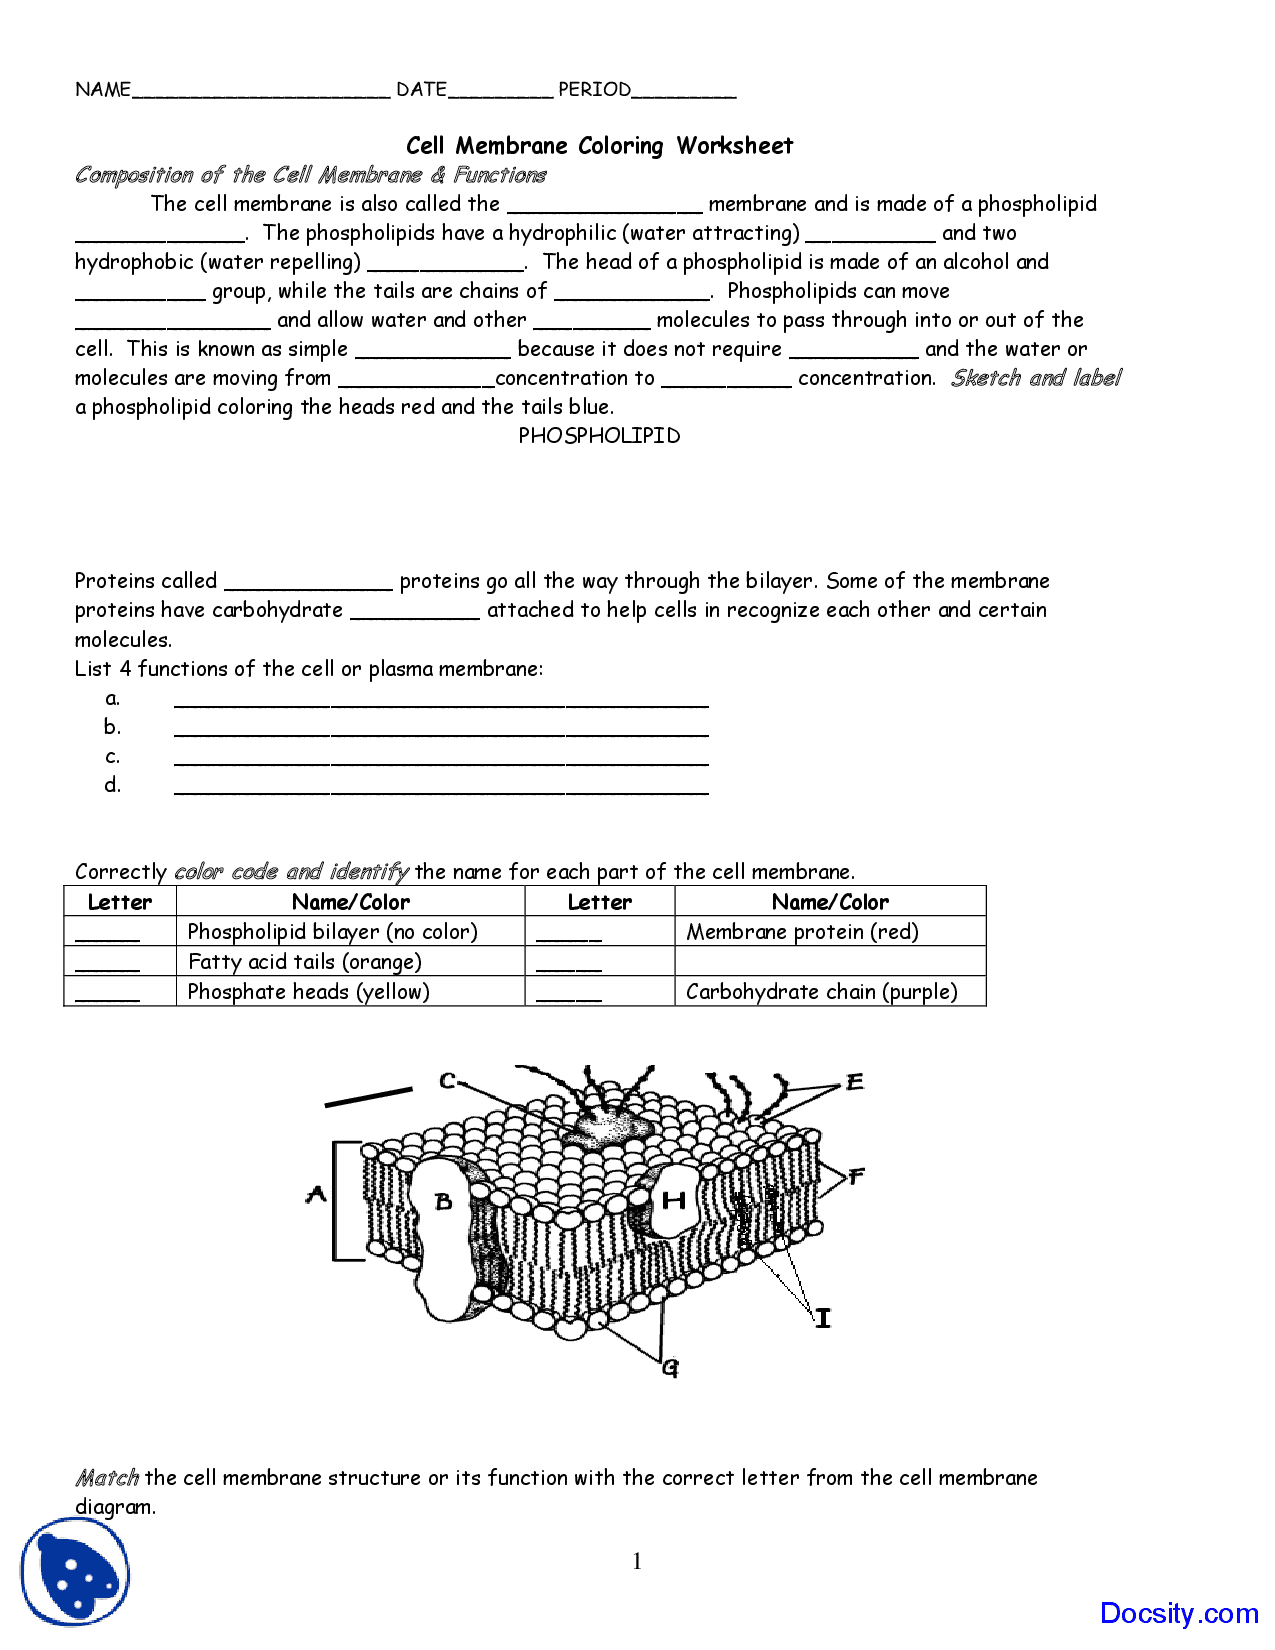 Cell Membrane Diagram Cell Membrane Coloring Application Of Biology Assignment Docsity